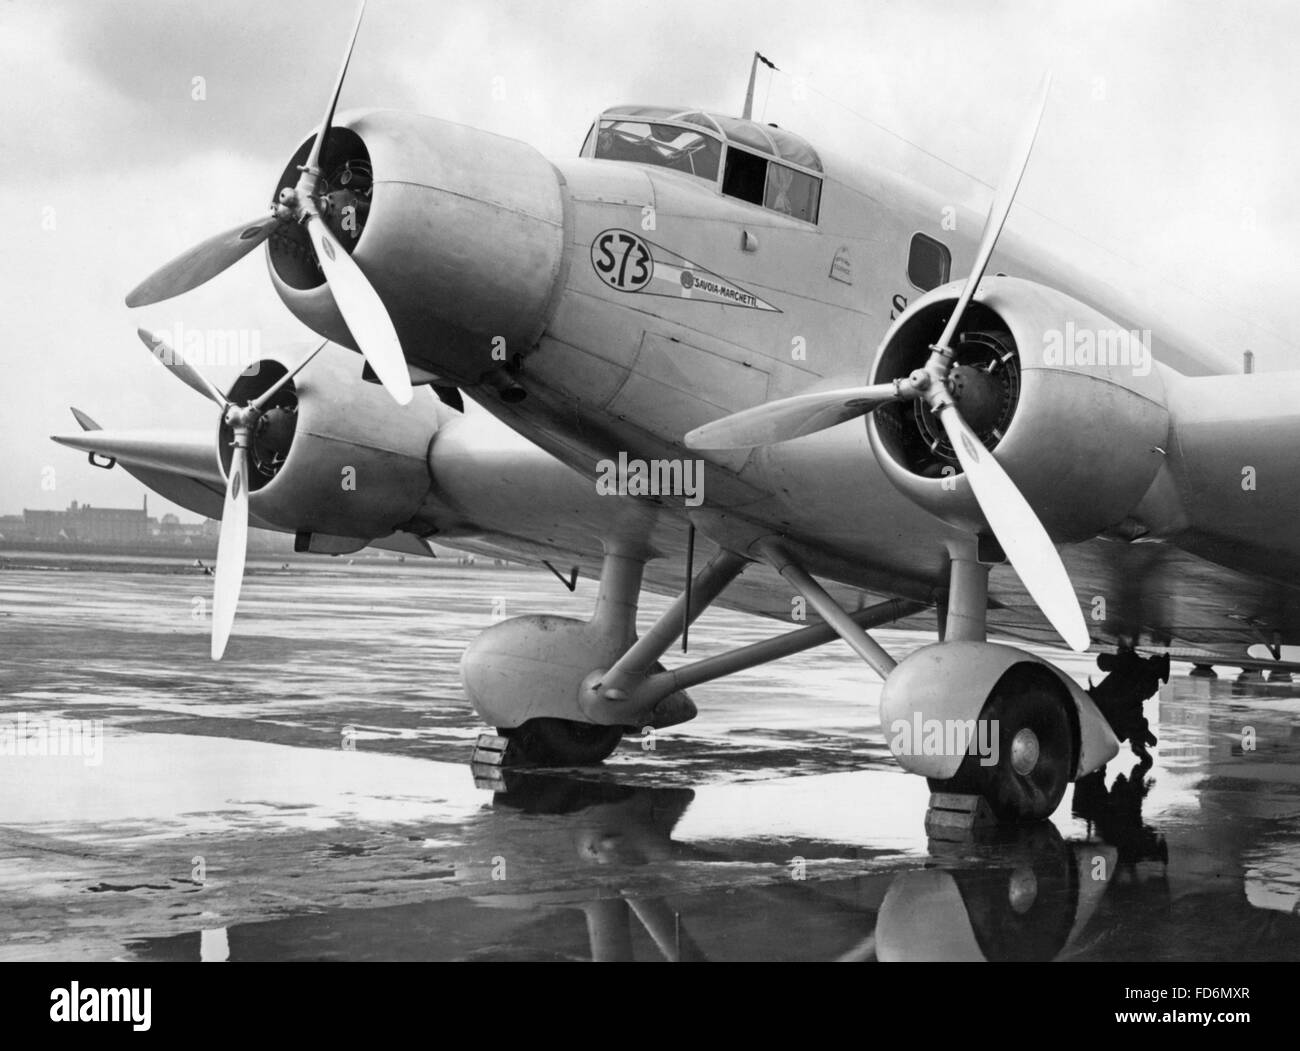 Airplane of the belgian airline Sabena at the airport of Berlin, ca. 1935 Stock Photo